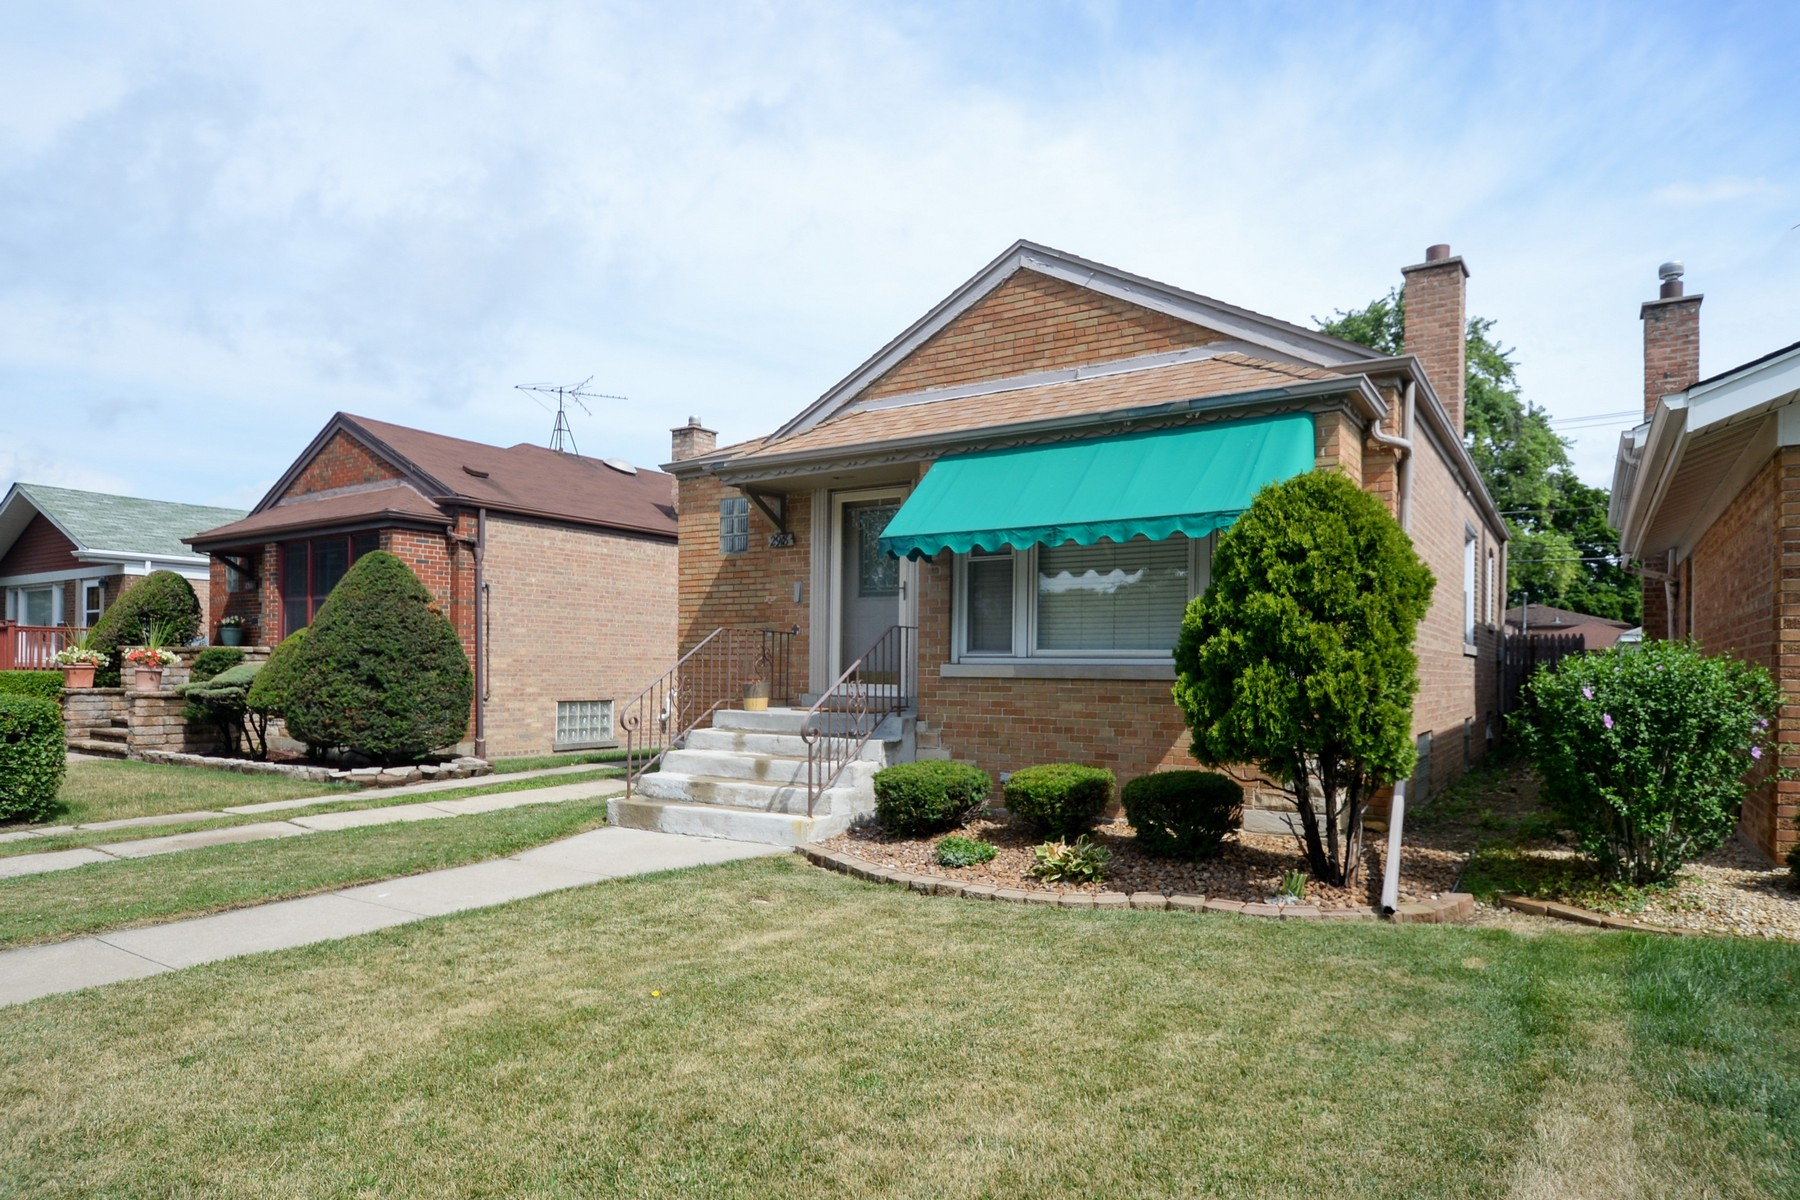 Single Family Home for Sale at Cozy Two Bedroom 2918 W 103rd Street, Chicago, Illinois, 60655 United States